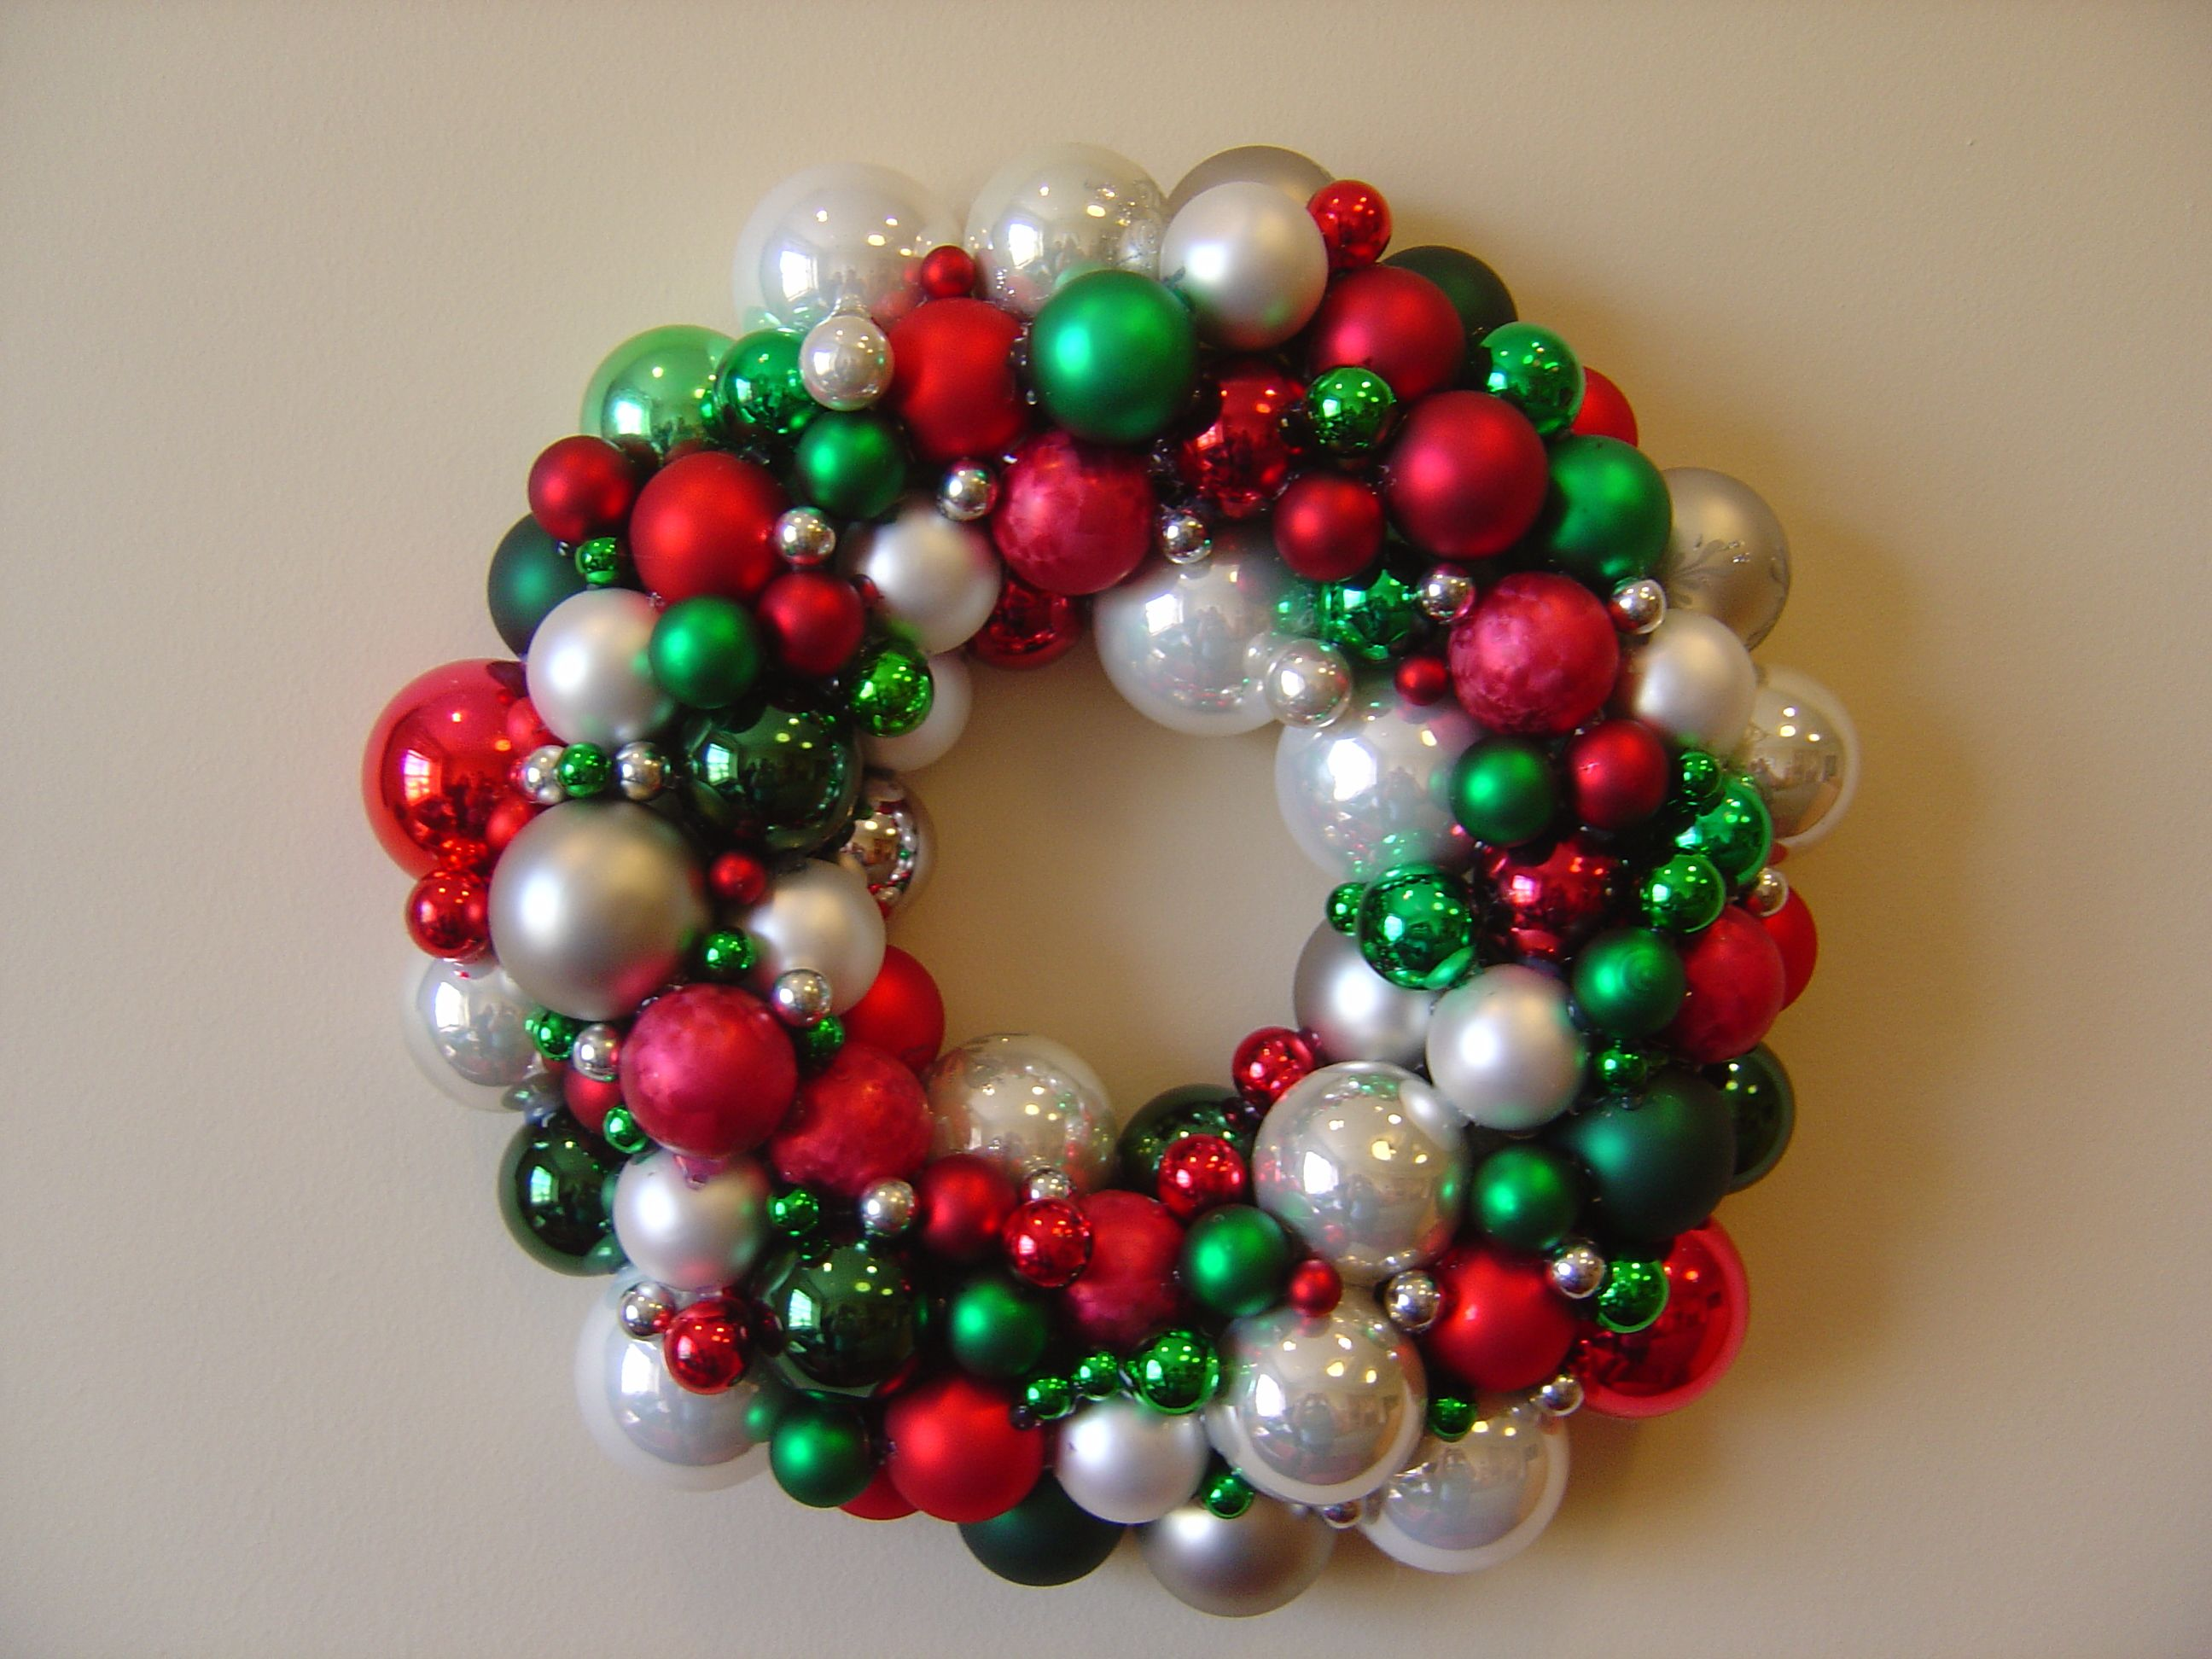 Traditional christmas color wreath made with glass ball ornaments   Glass ball ornaments ...